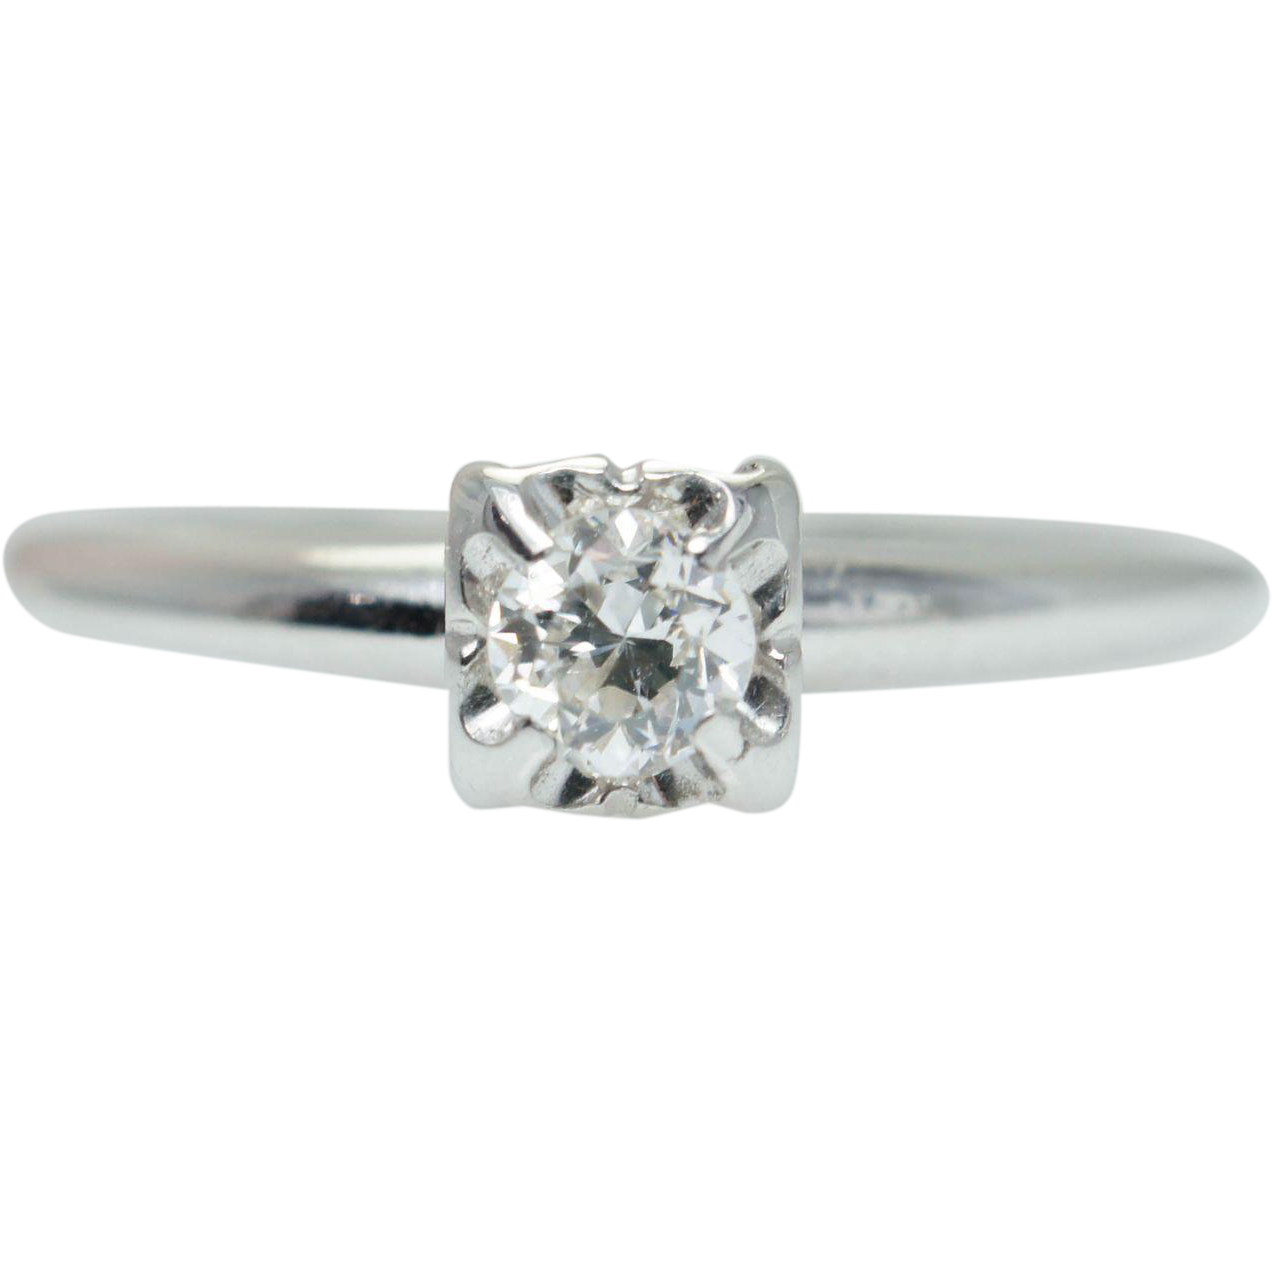 Vintage Natural Diamond Solitaire Illusion Setting Engagement Ring 14k White Gold